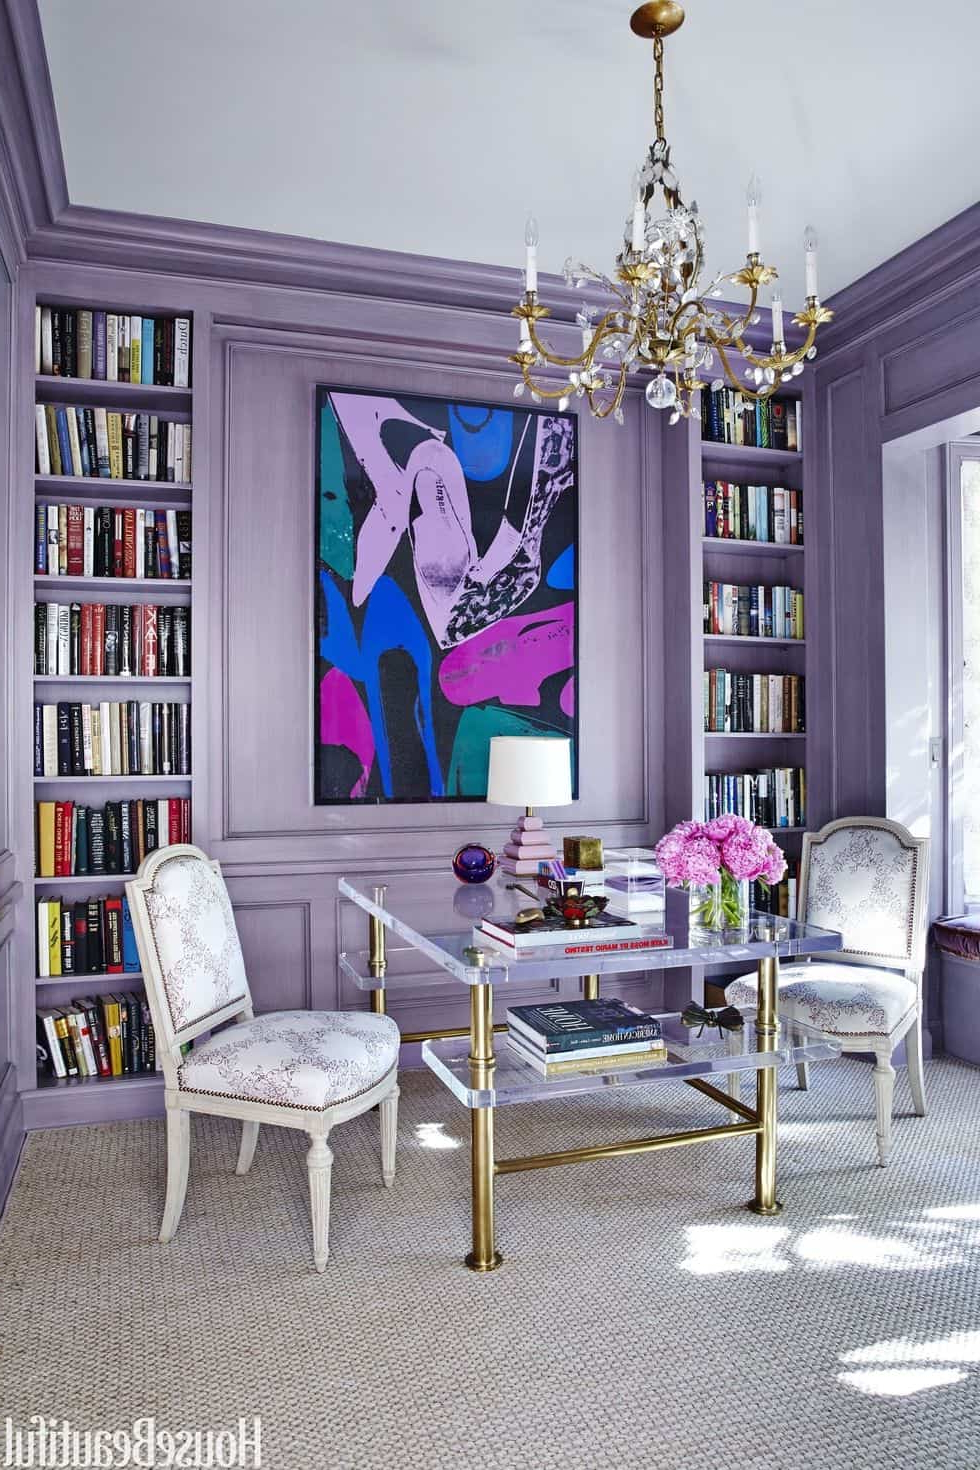 5 Fun Work From Home Office Ideas Artsy Fartsy Life